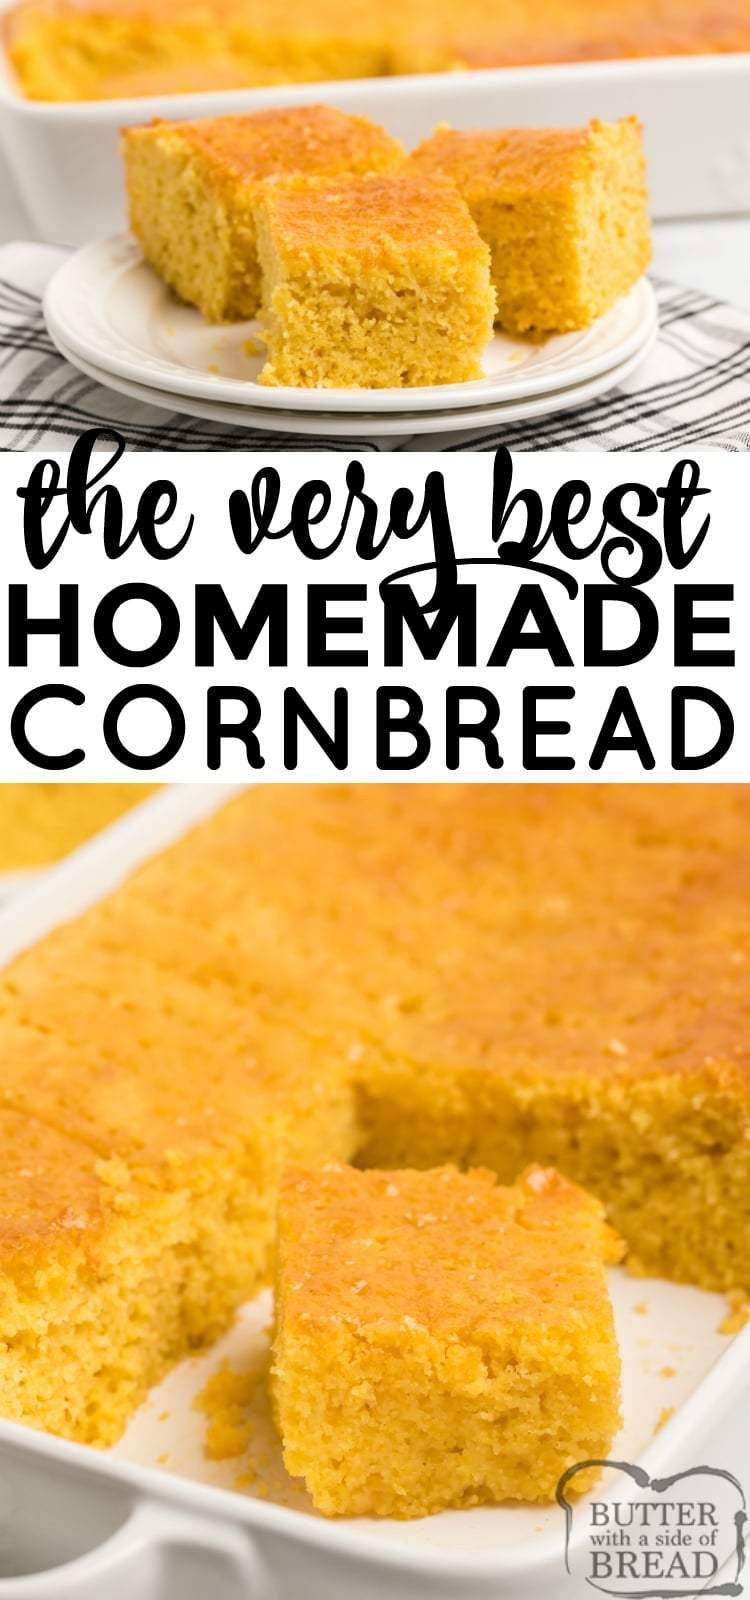 Homemade Cornbread recipe that is moist, slightly sweet and topped with a delicious honey butter. This easy cornbread recipe is made from scratch in one bowl with basic ingredients and it turns out perfectly every time. PLUS, we've got a little trick for making sure every single bite is full of honey of butter!